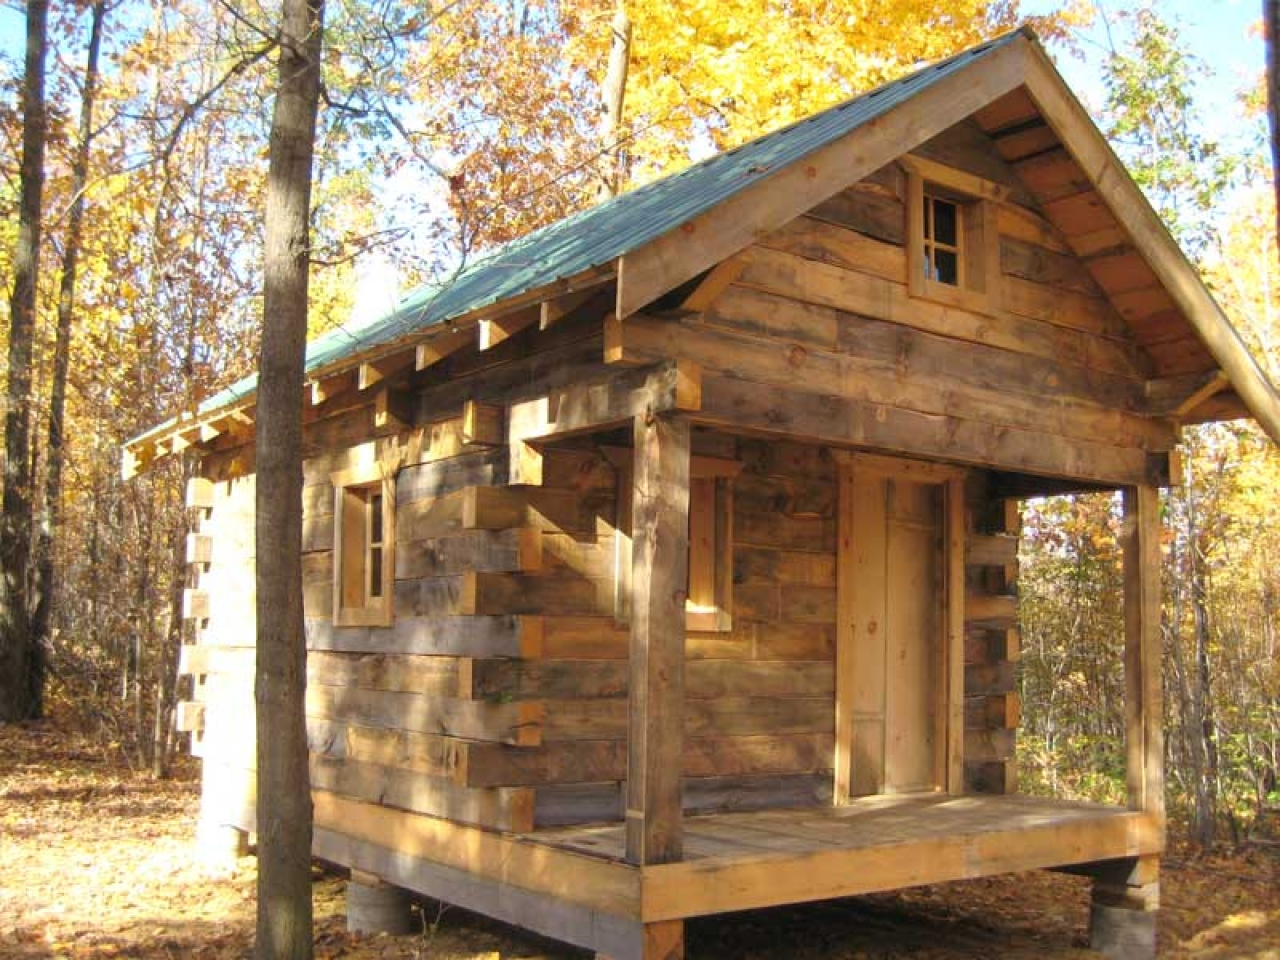 Small rustics log cabins plan simple log cabins very for Very small cabins